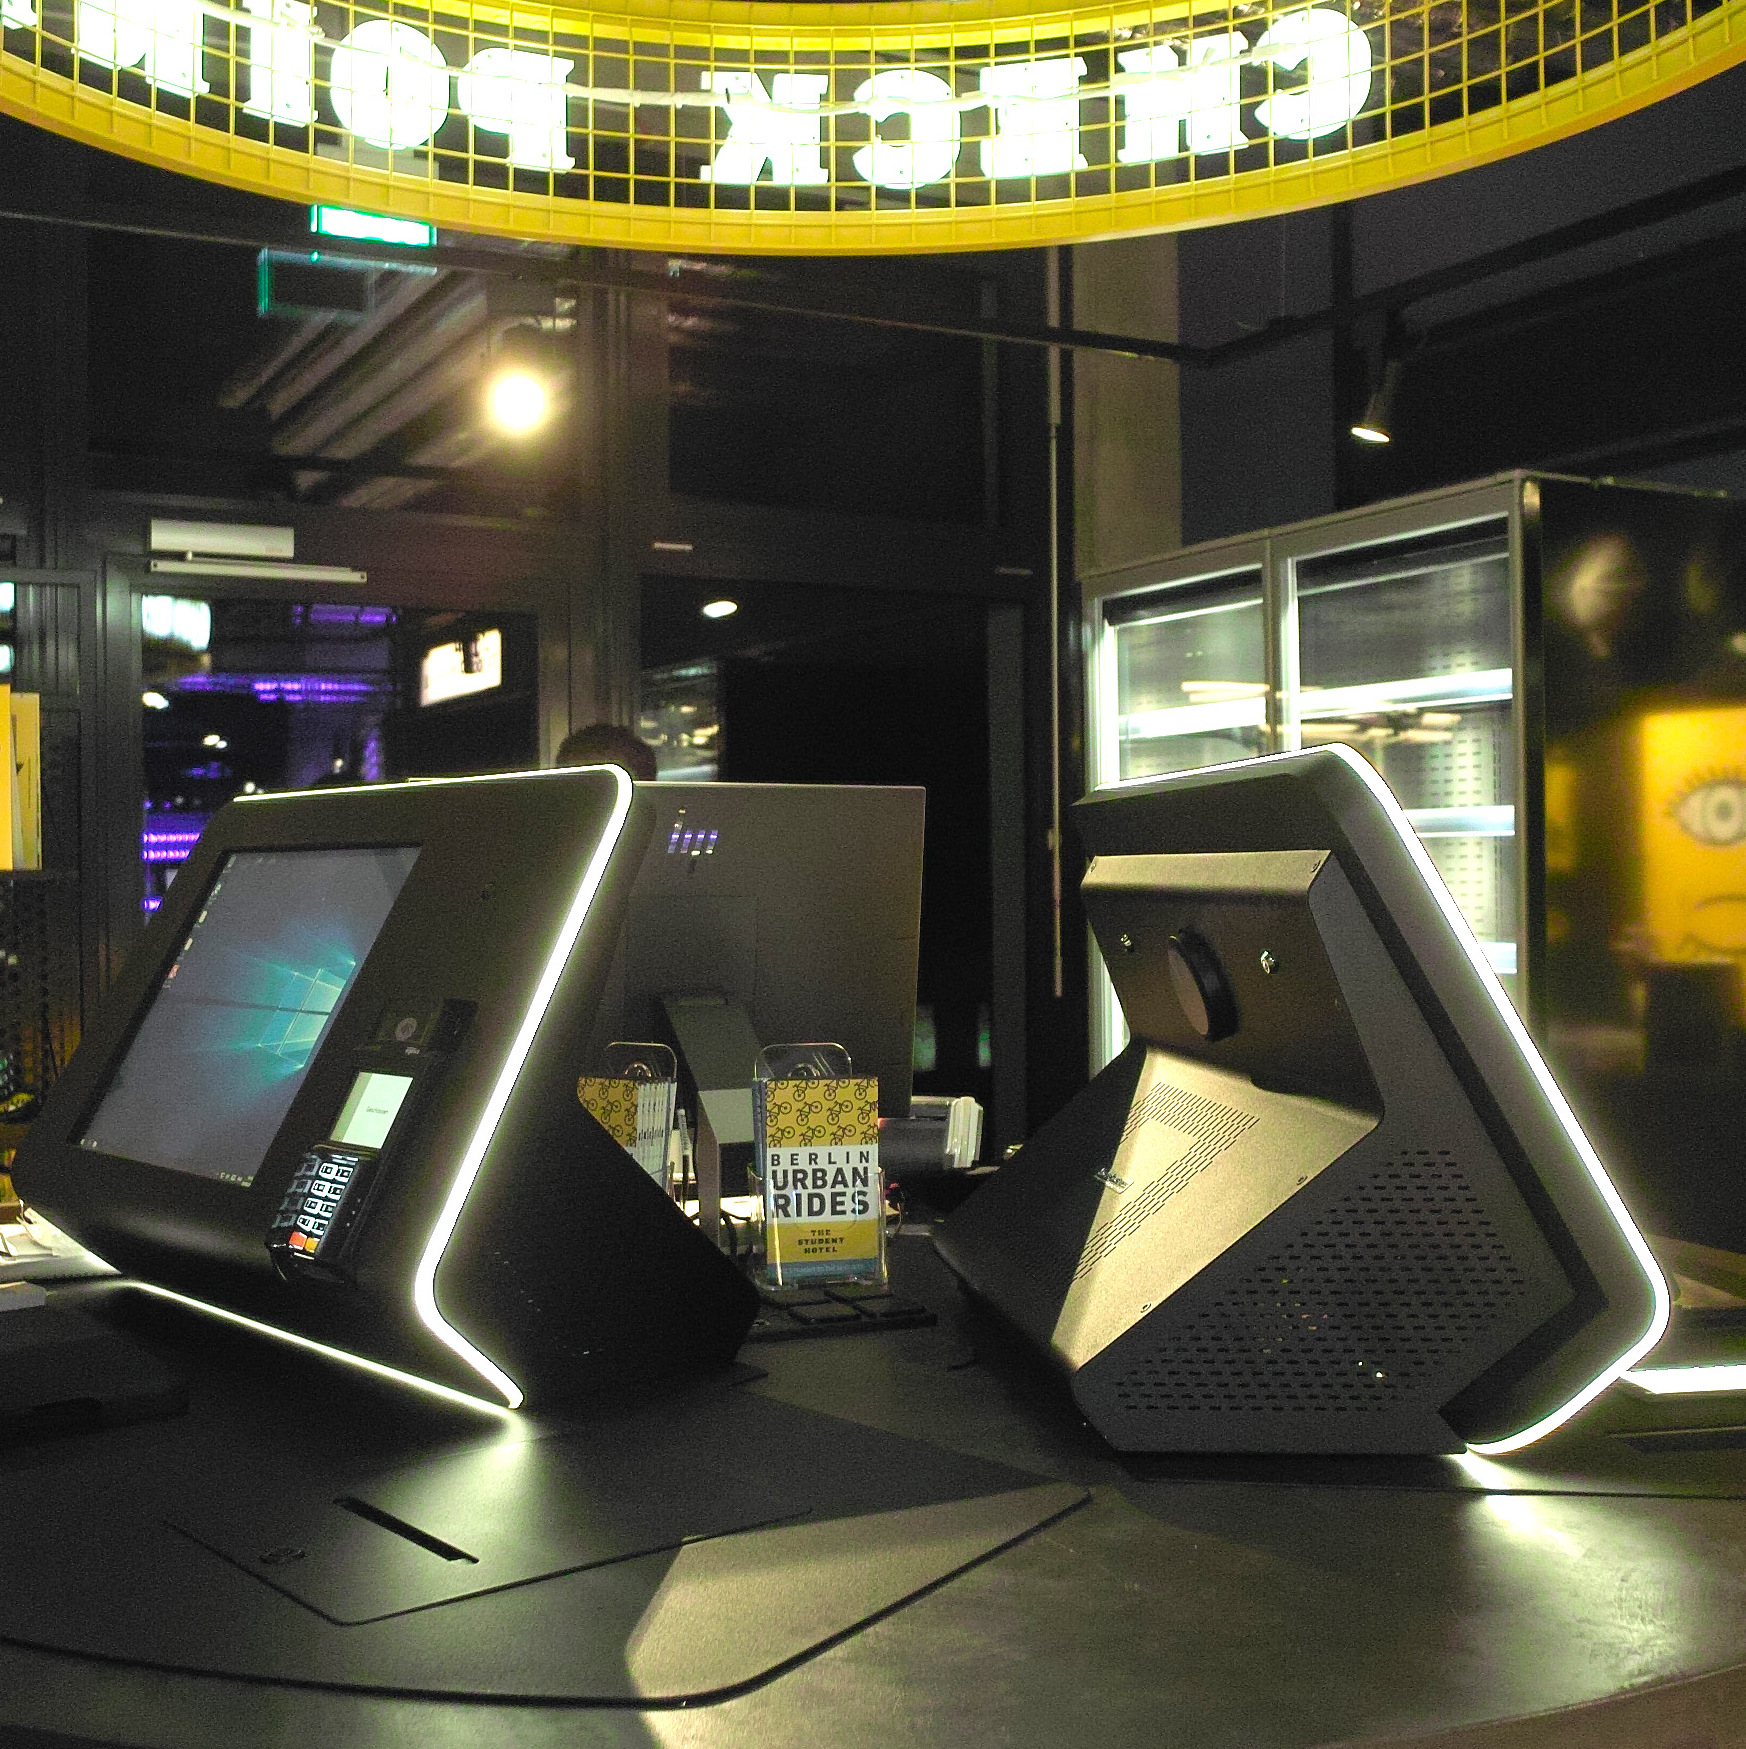 The Student Hotel Berlin opens with K4B Pulsar self service check-in desks